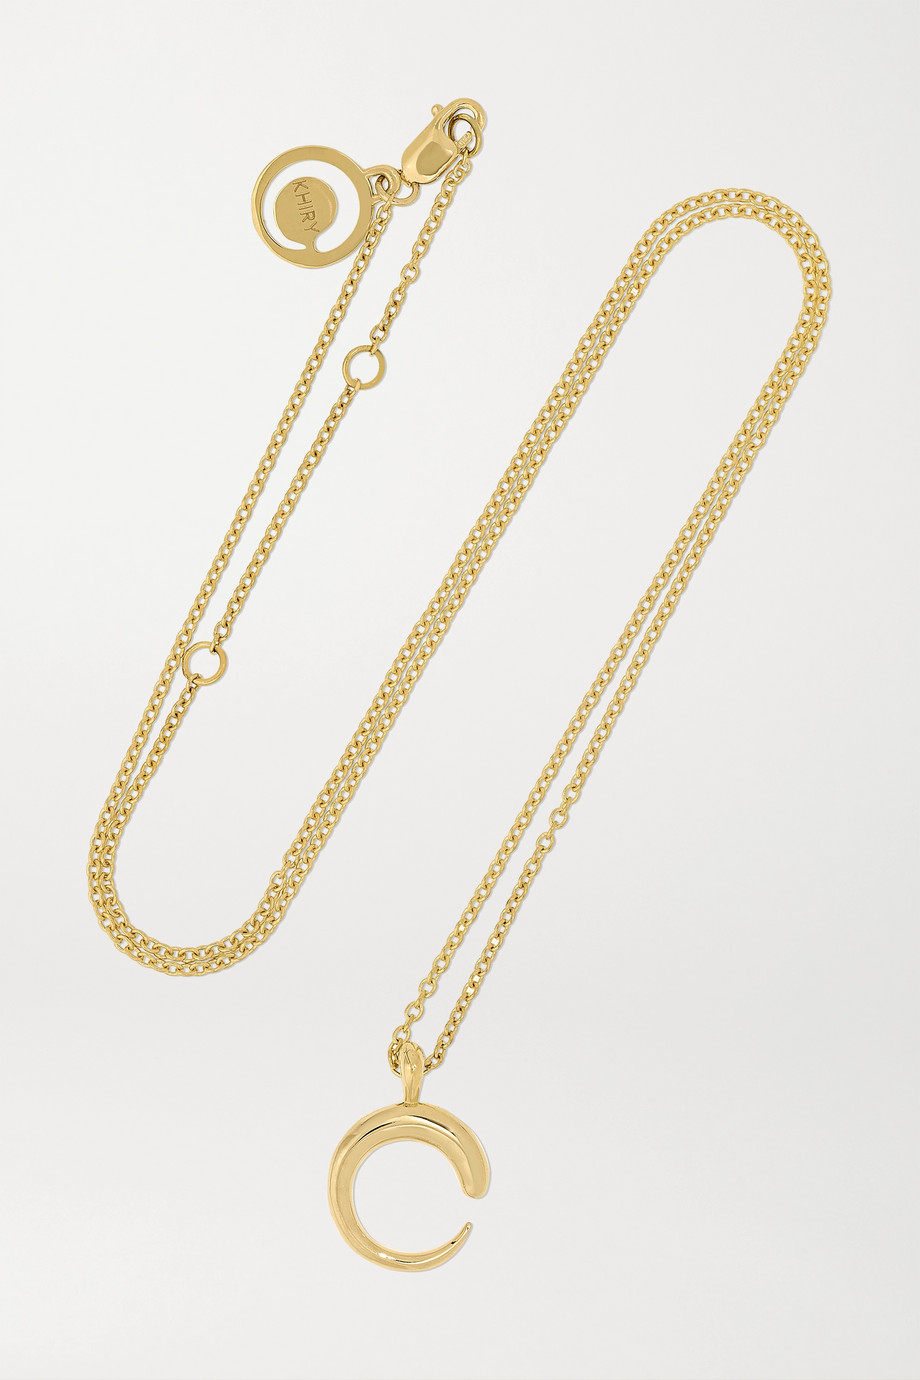 KHIRY FINE Mini Khartoum 18-karat gold necklace